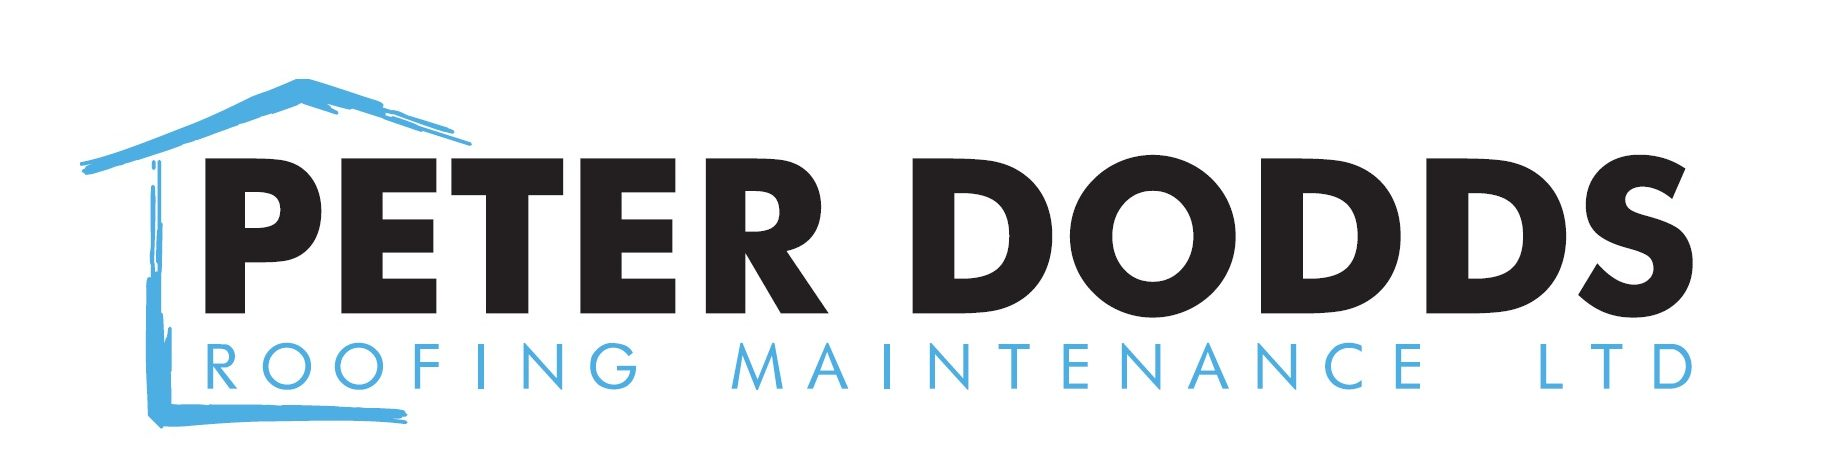 Peter Dodds Roofing Maintenance Ltd